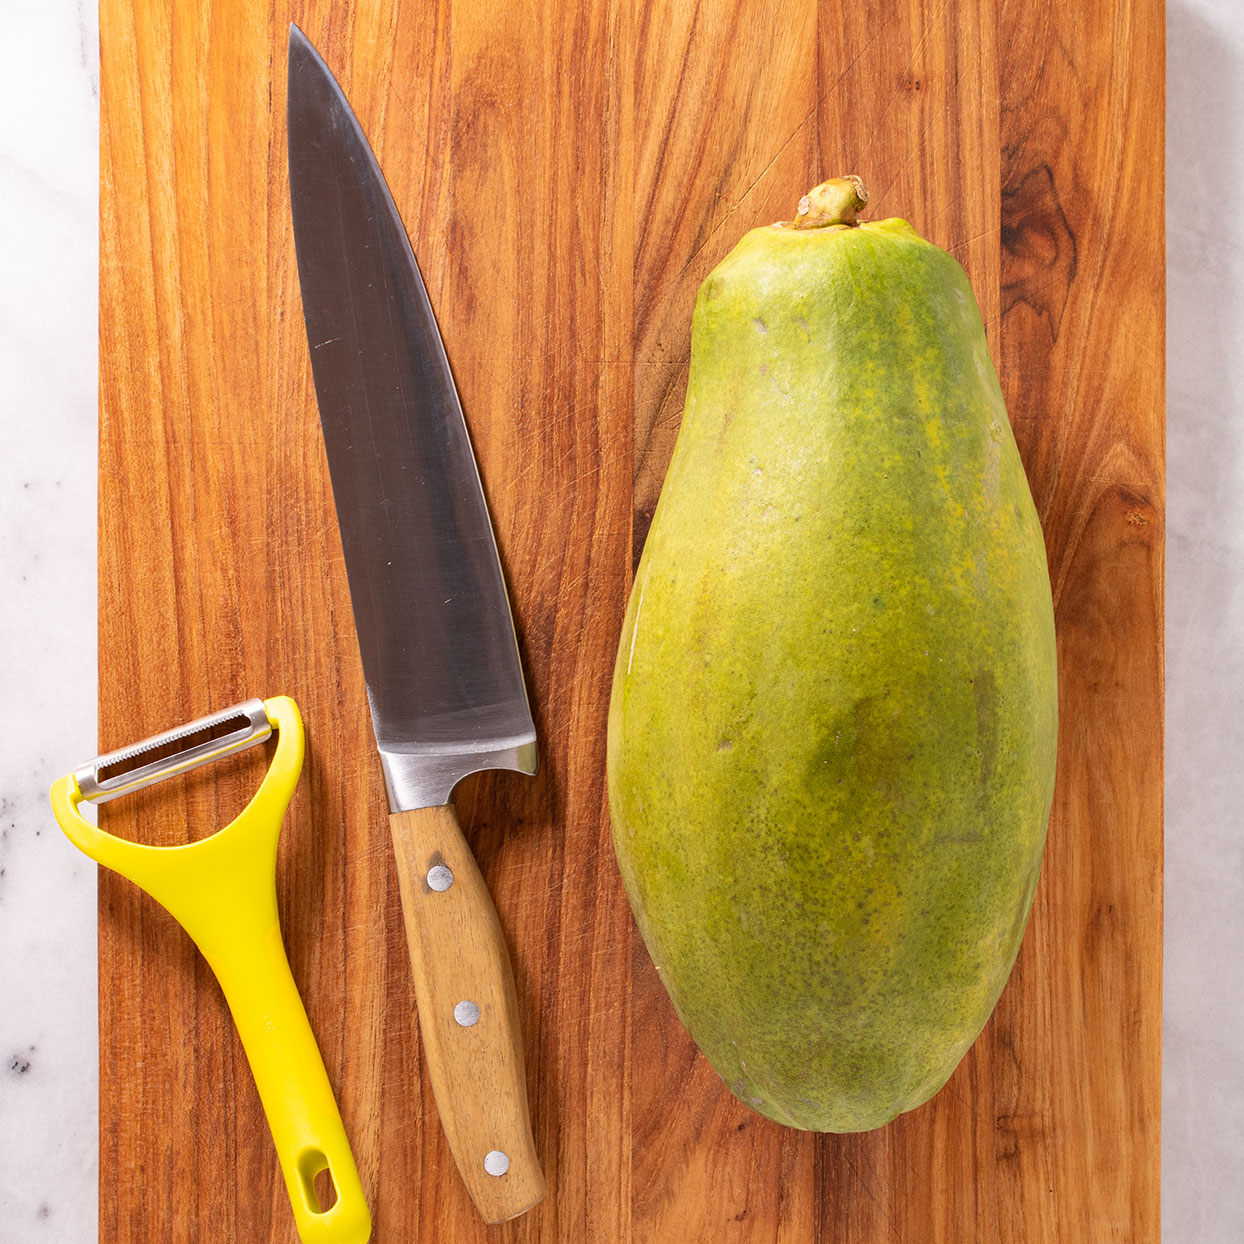 papaya, knife and peeler on cutting board